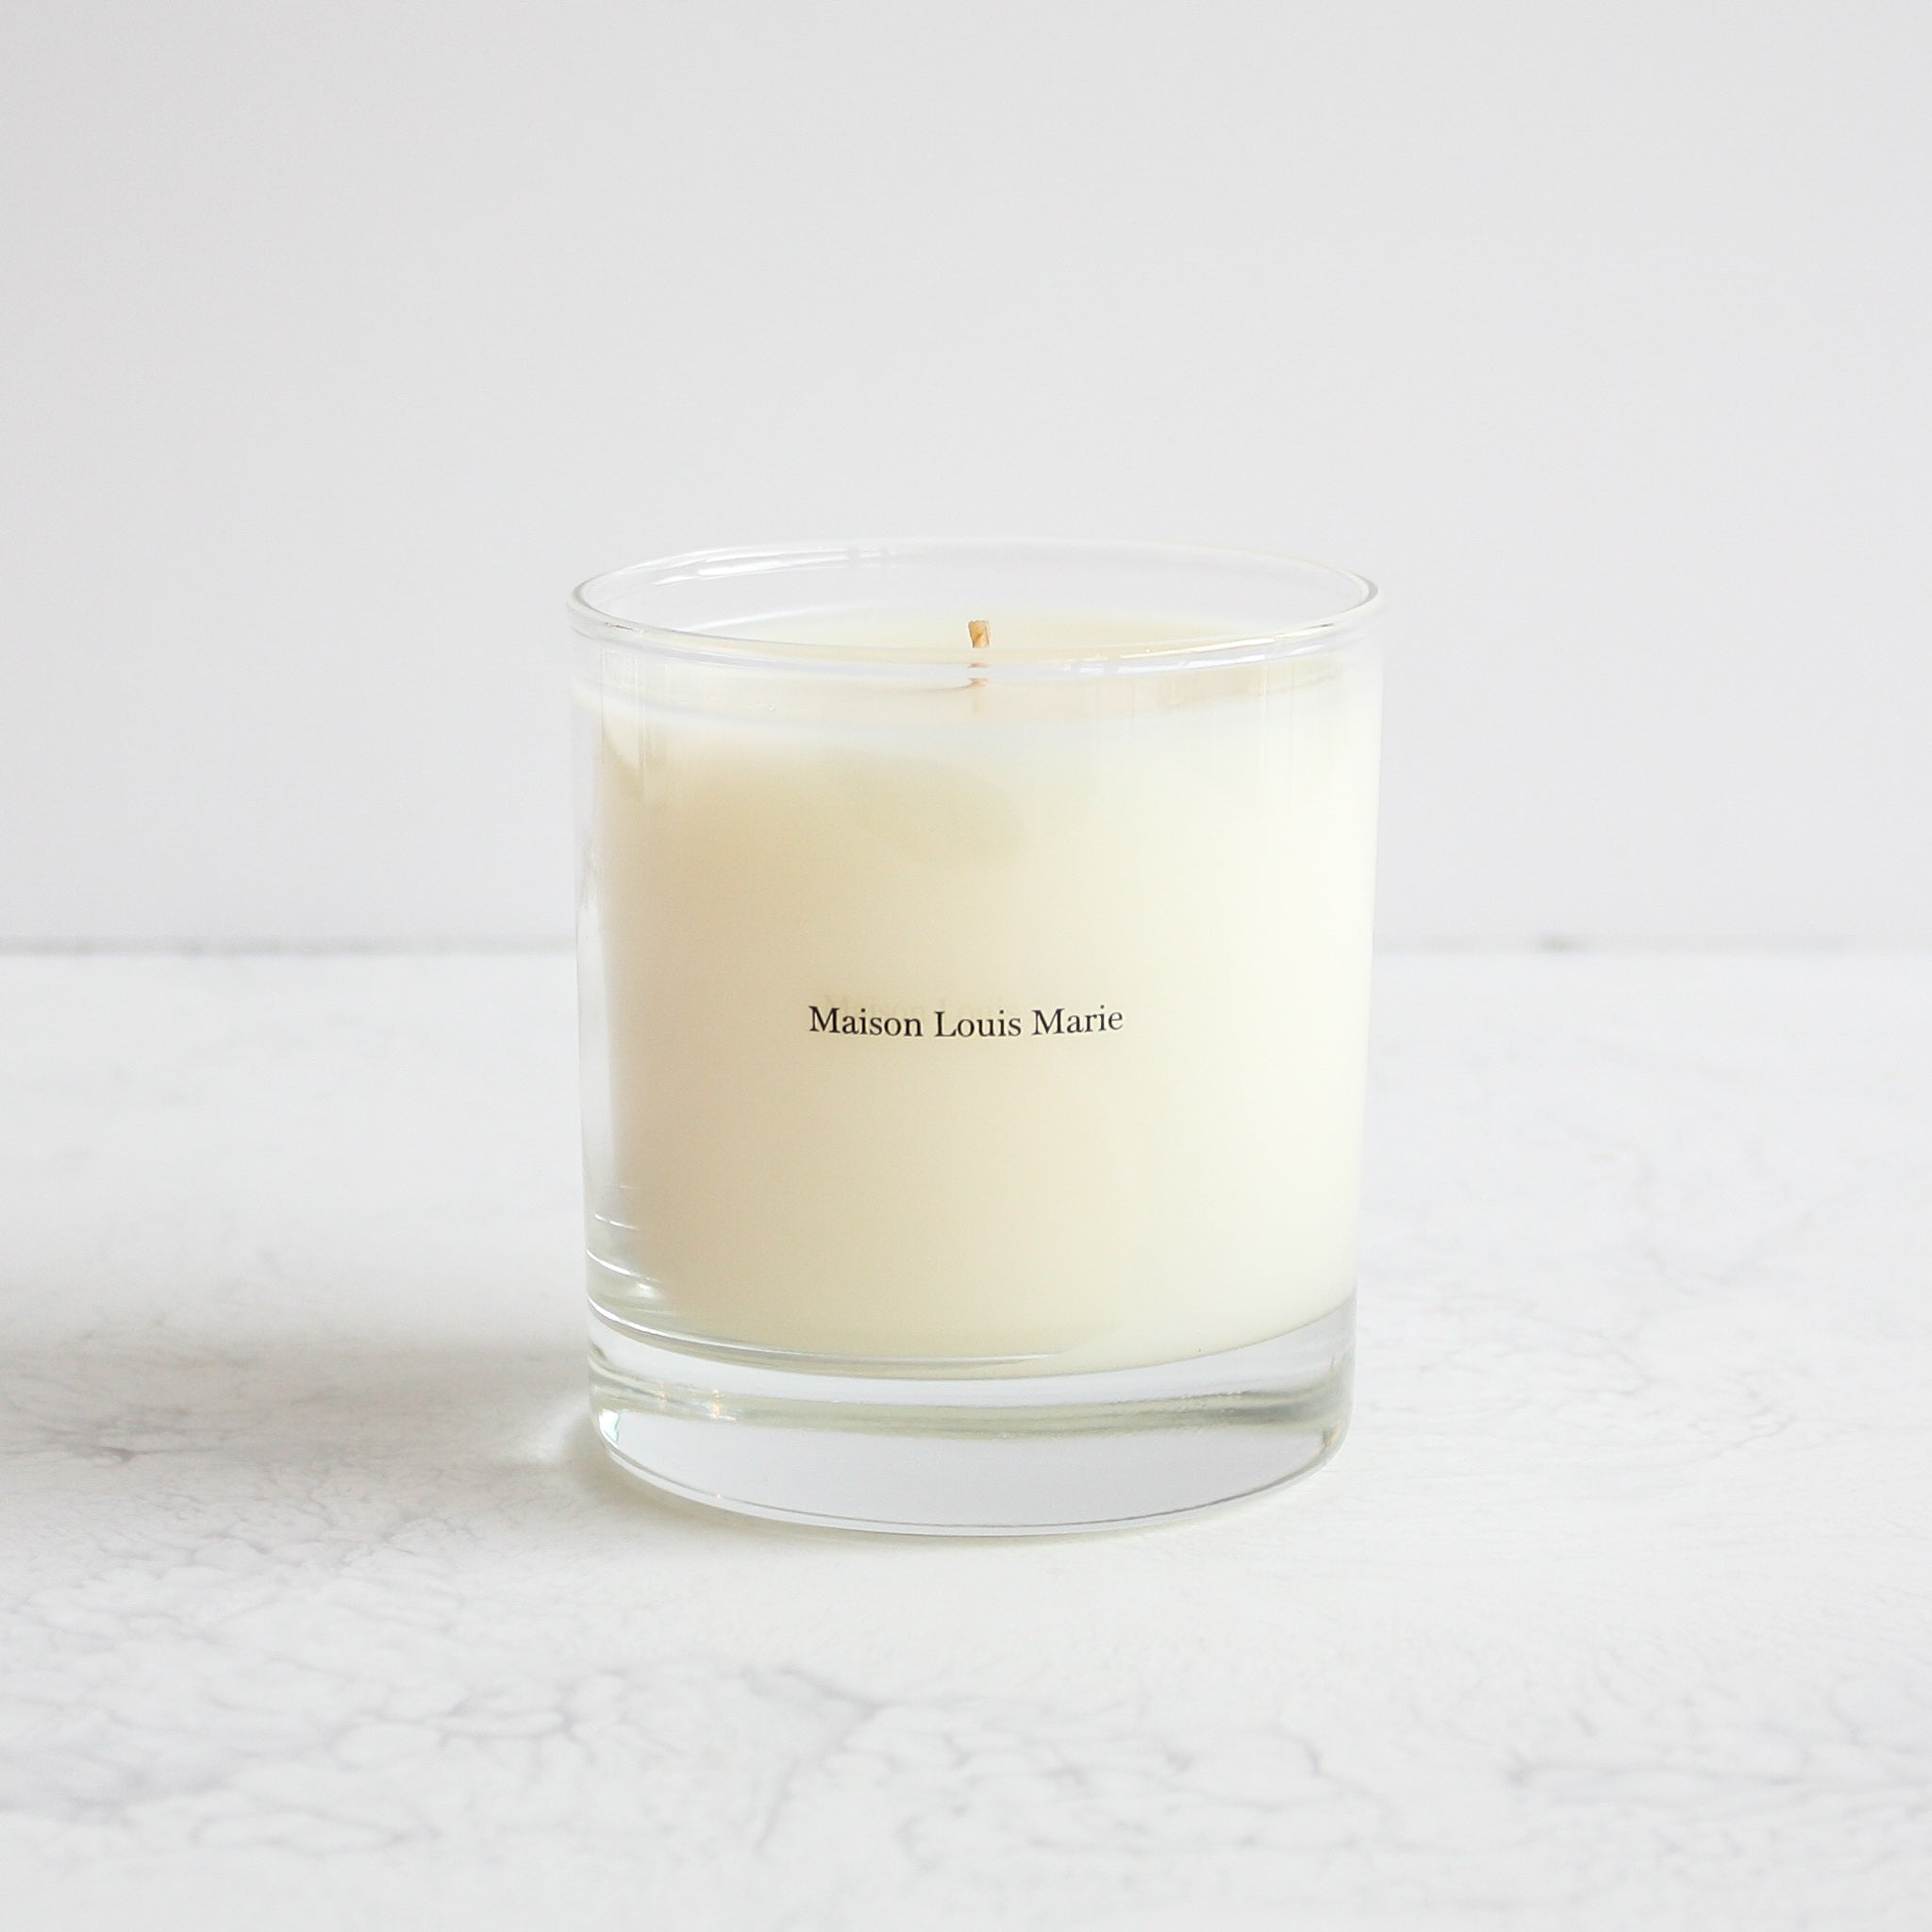 Le Long Fond candle made of a soy blend of hinoki wood, cedarwood, patchouli and white musk by Maison louis Marie